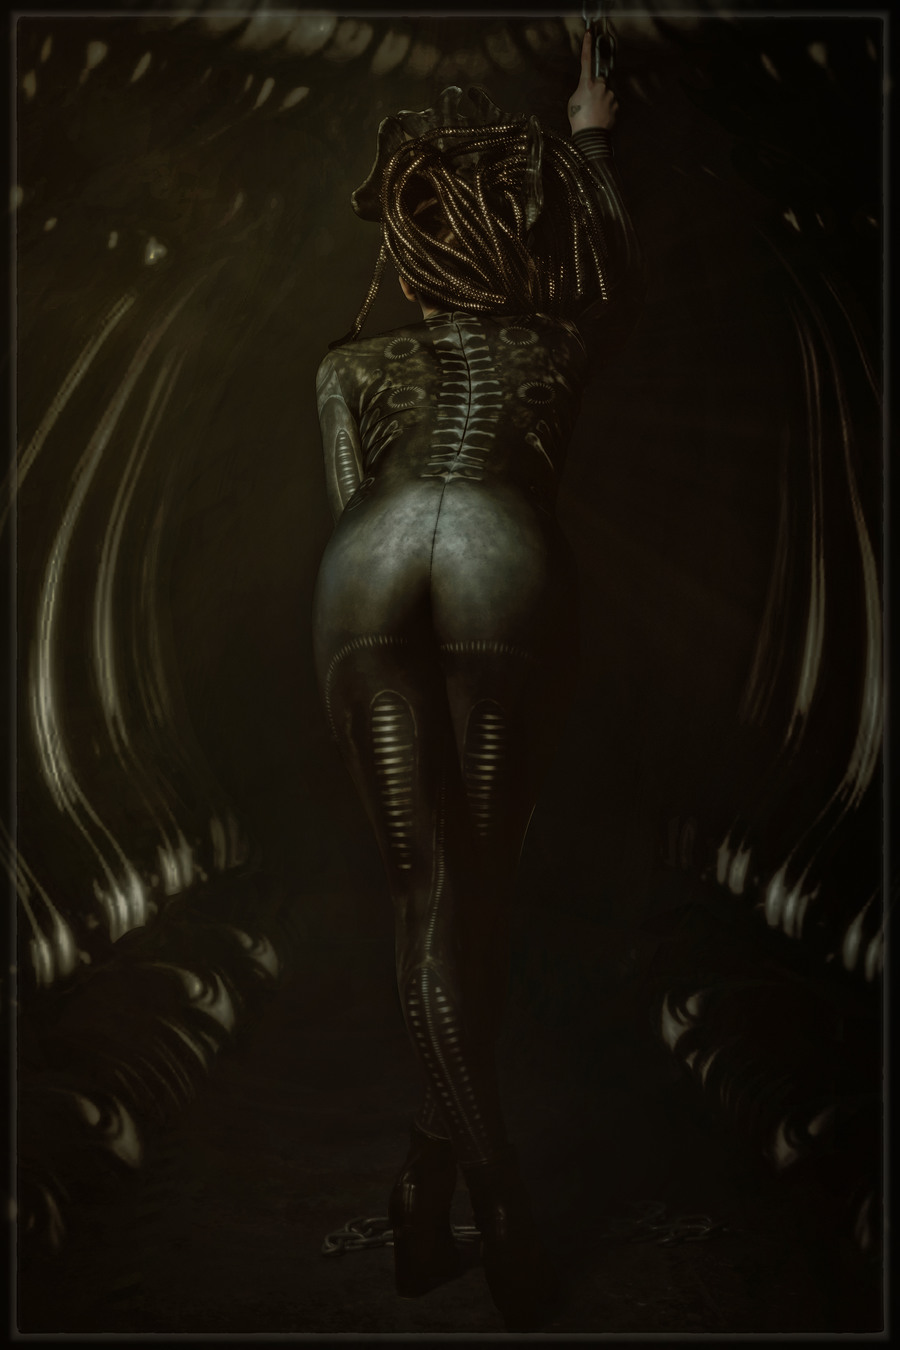 Giger / Photography by Mark Hampson Photography, Model antoniajay, Makeup by antoniajay, Post processing by Mark Hampson Photography, Stylist Mark Hampson Photography / Uploaded 8th November 2020 @ 03:00 PM